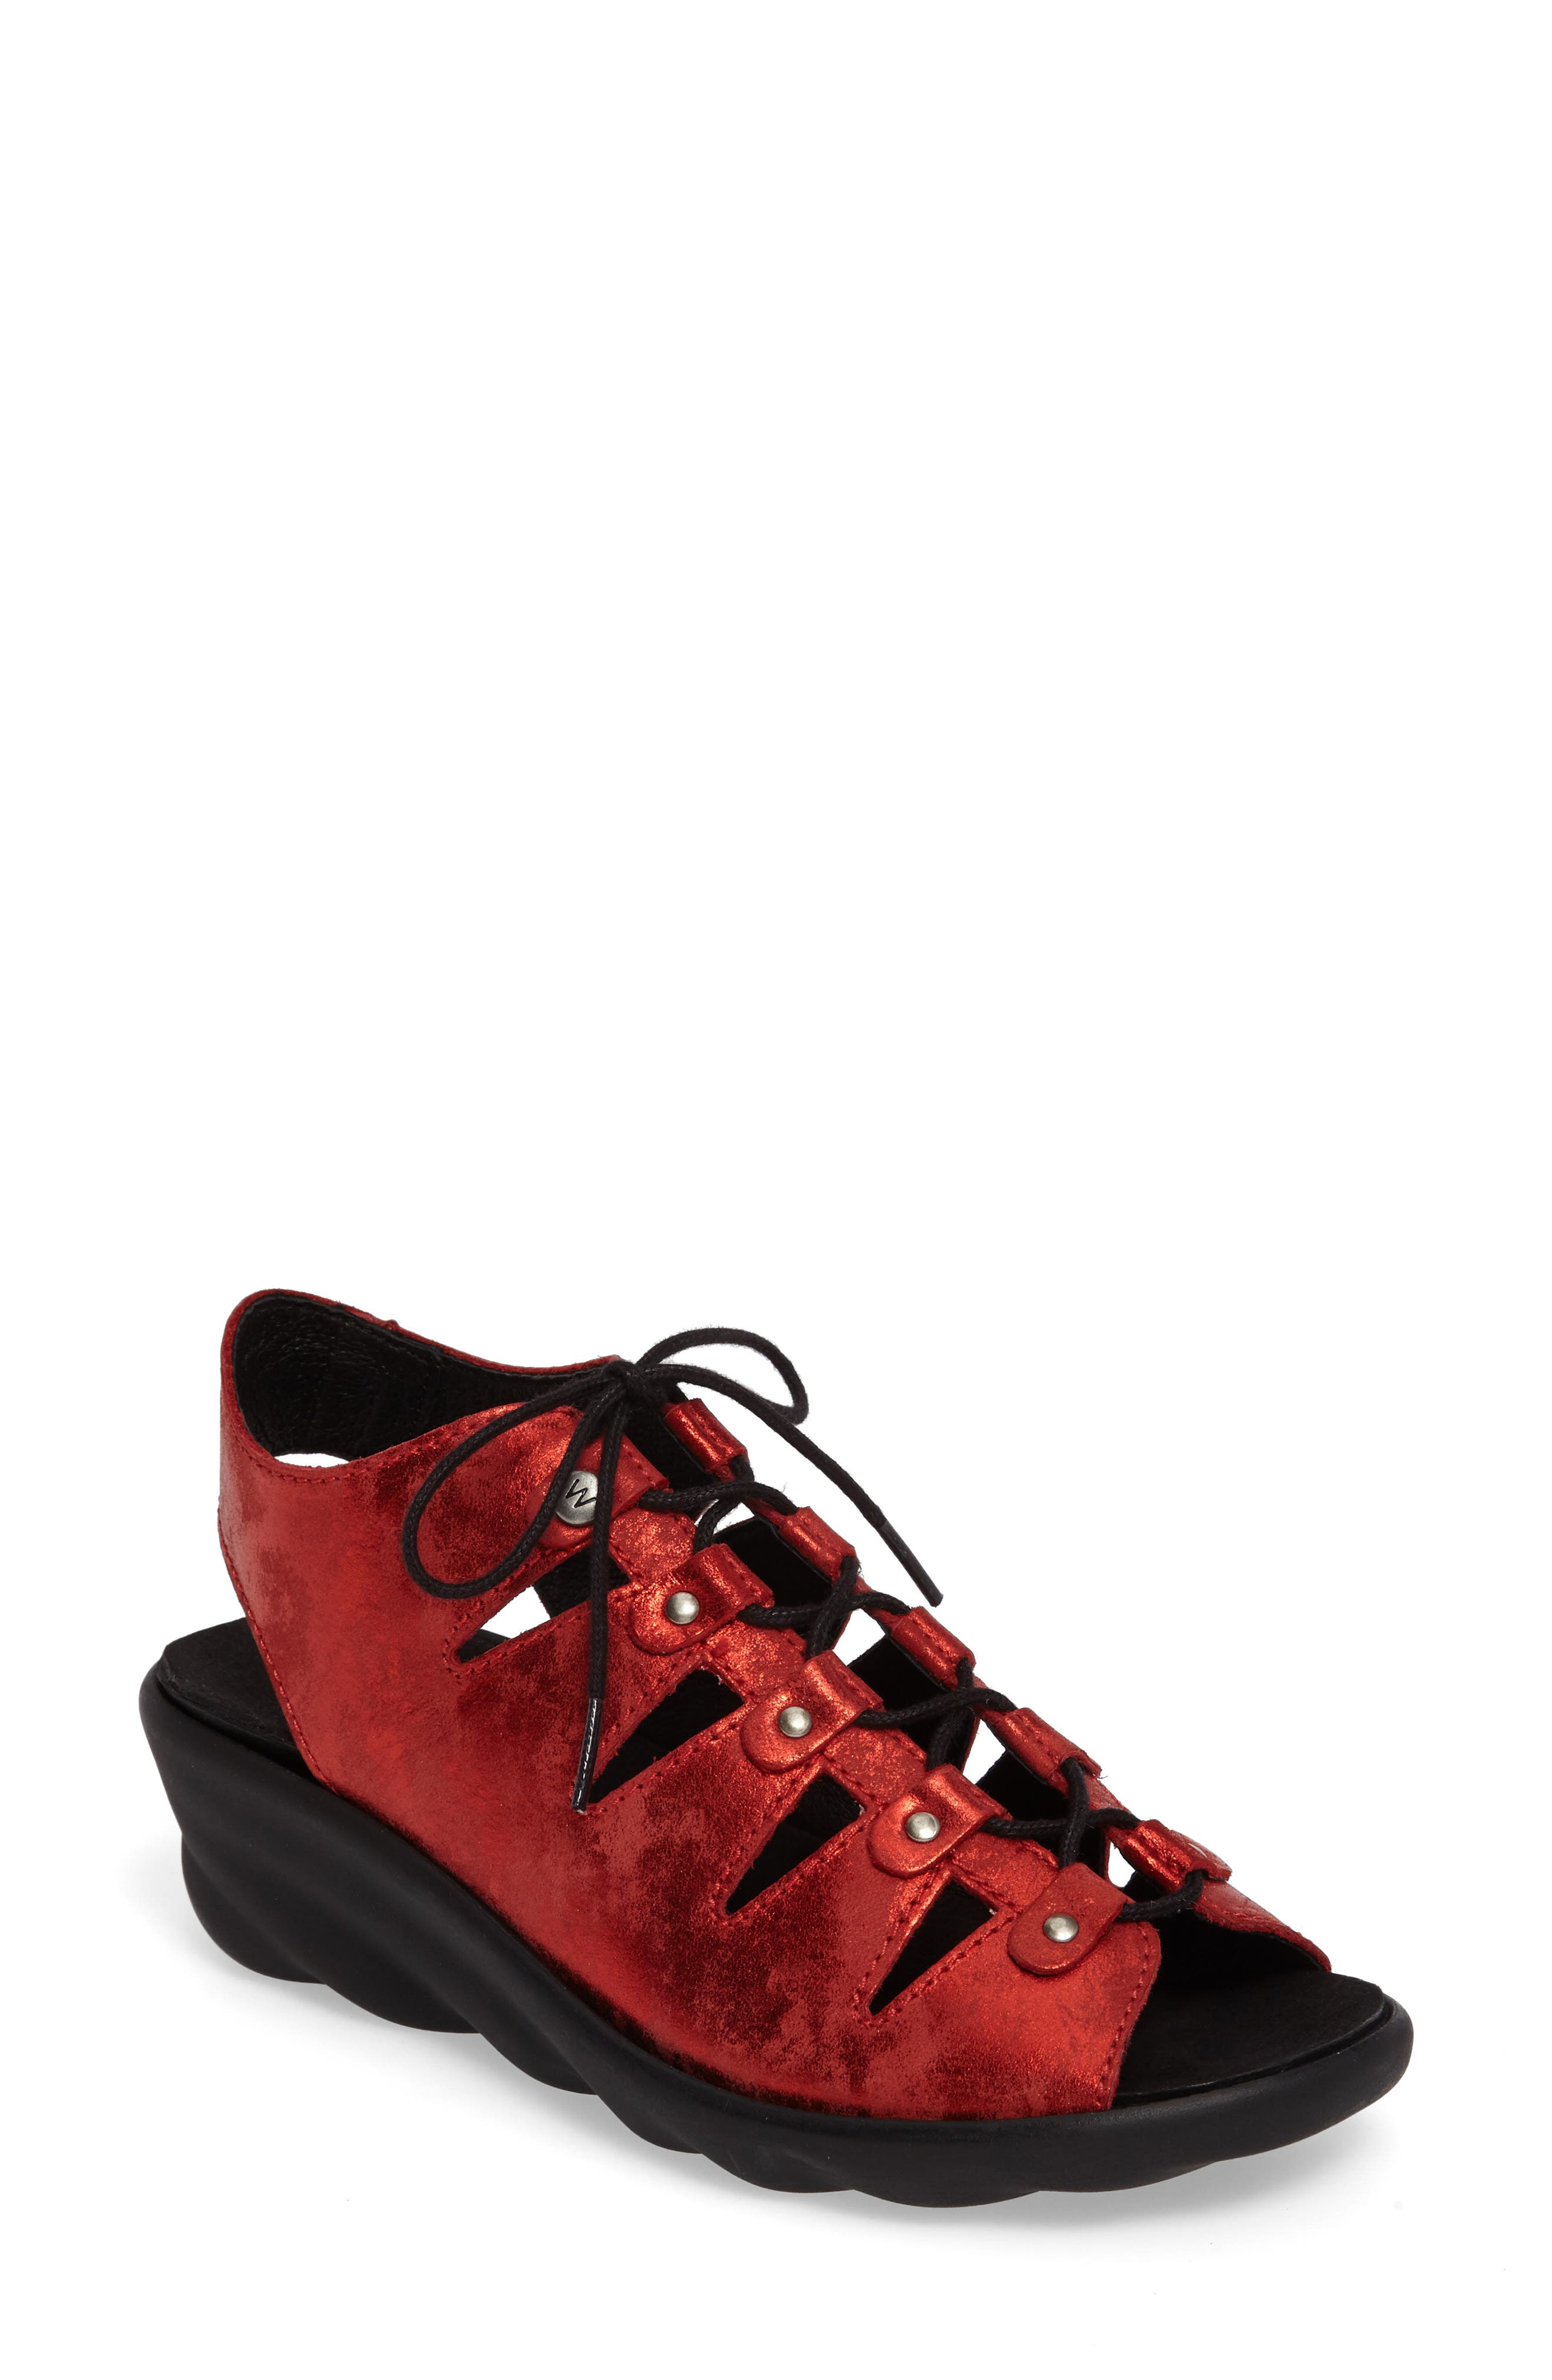 Arena Sandal,                             Main thumbnail 1, color,                             Red Nubuck Leather